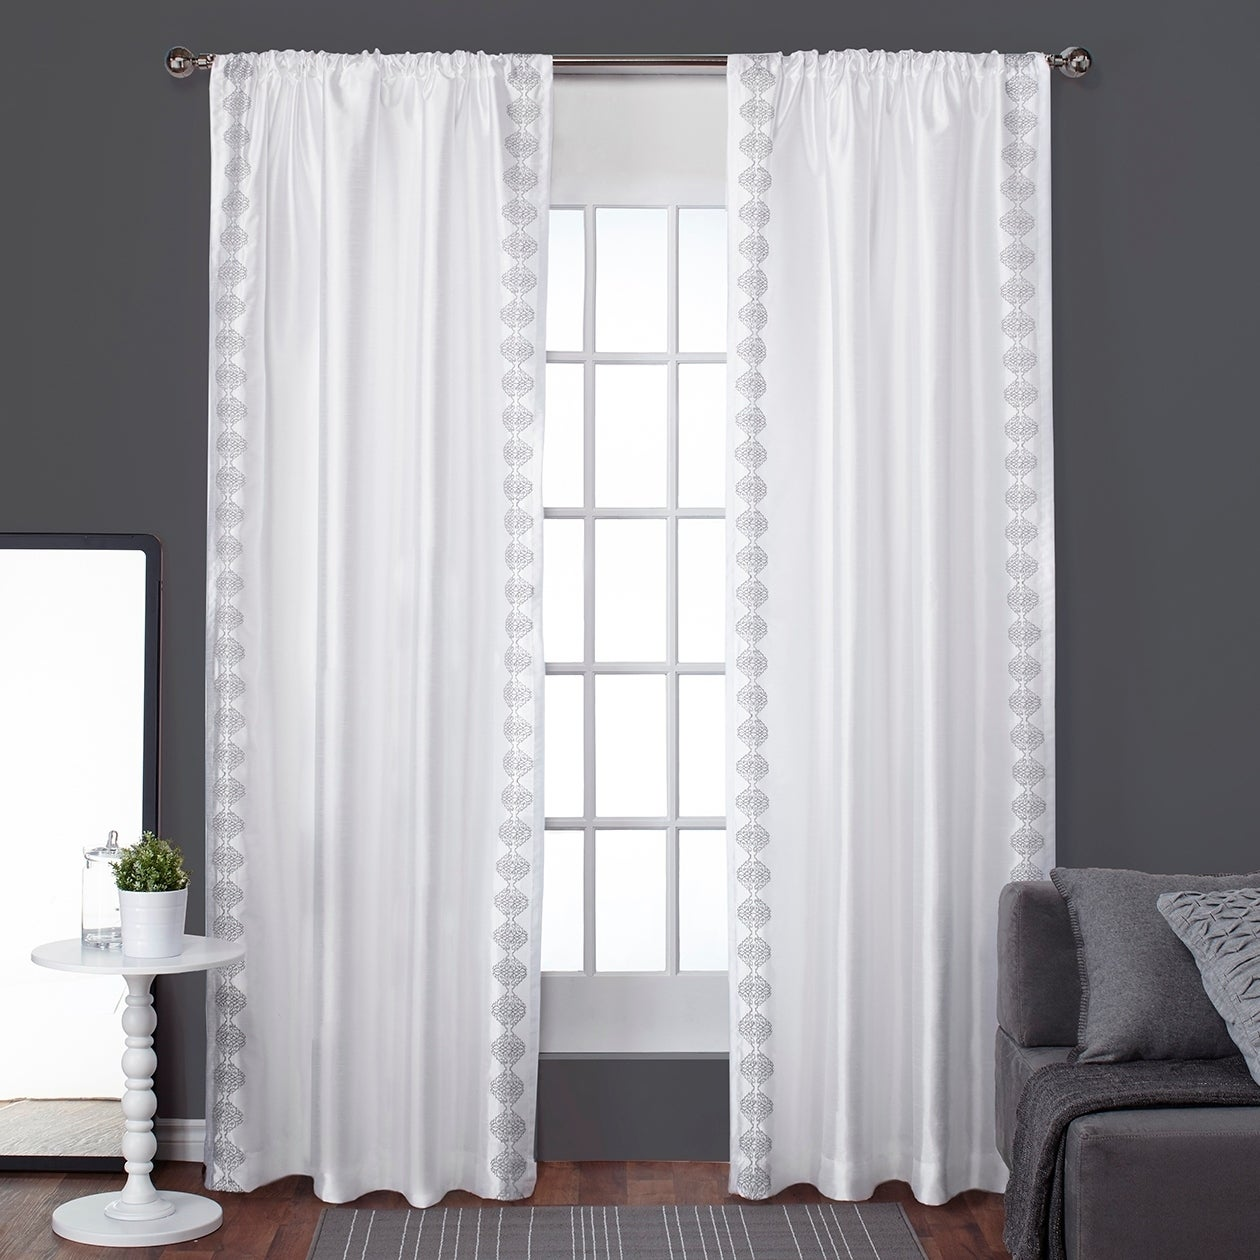 ATI Home Tiffany Embroidery Striped Curtain Panel Pair with Rod Pocket